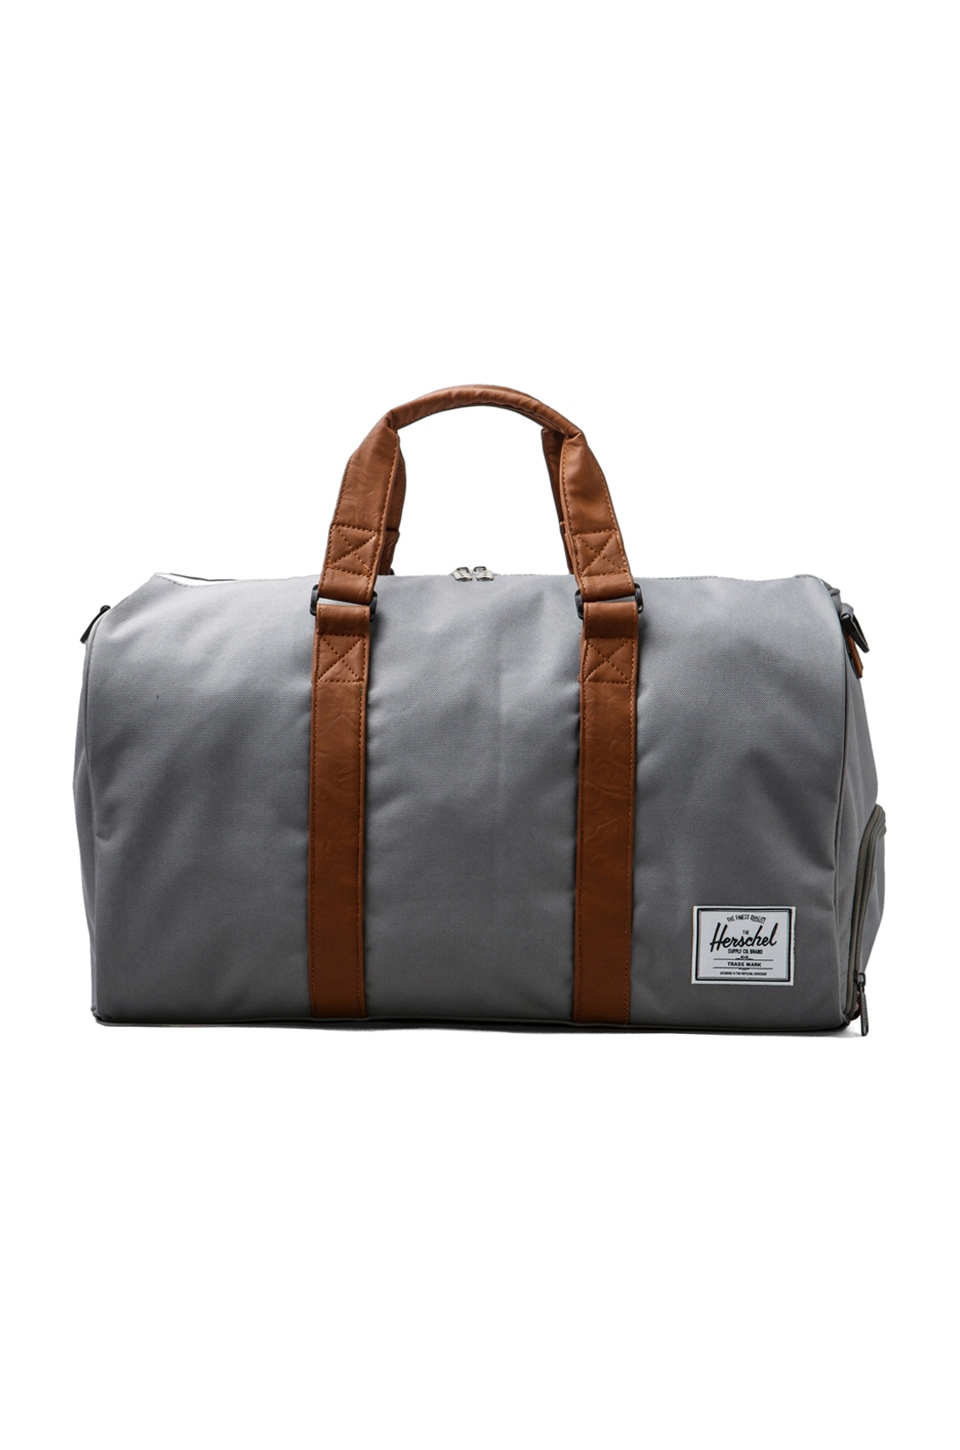 Herschel Supply Co. NOVEL 더플백